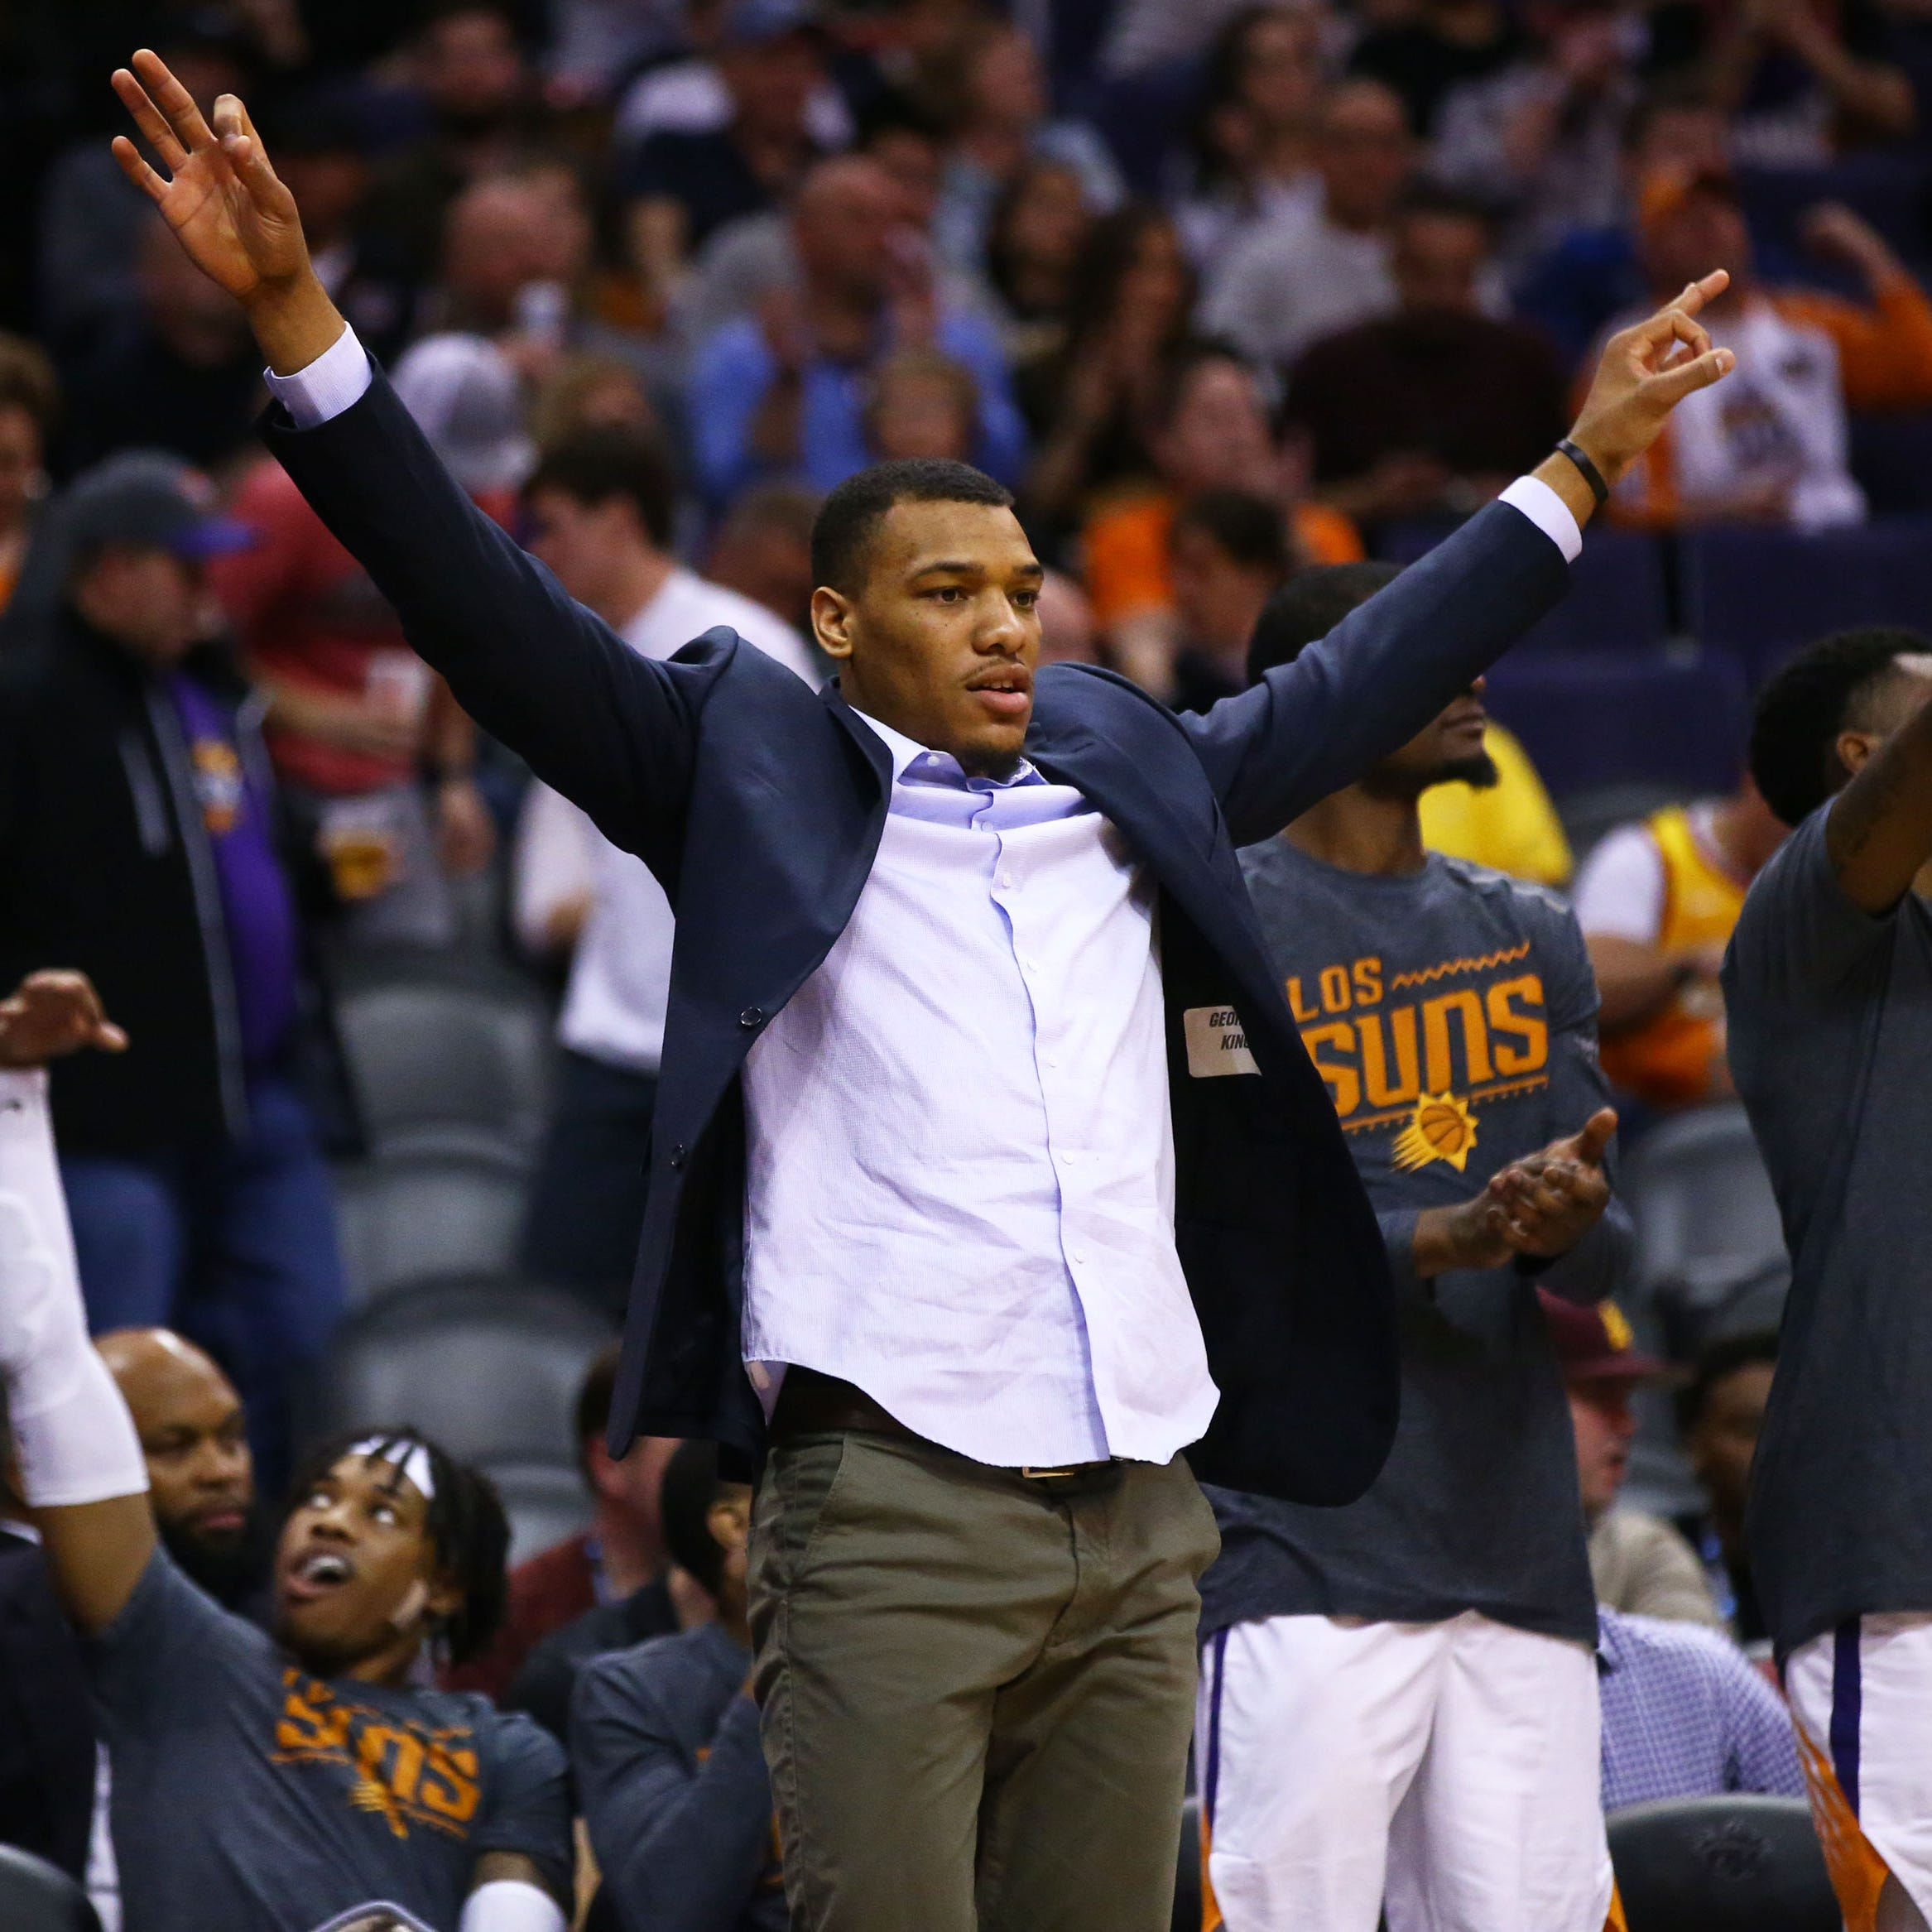 George King impressed with new Suns coach Monty Williams, eyes strong summer league